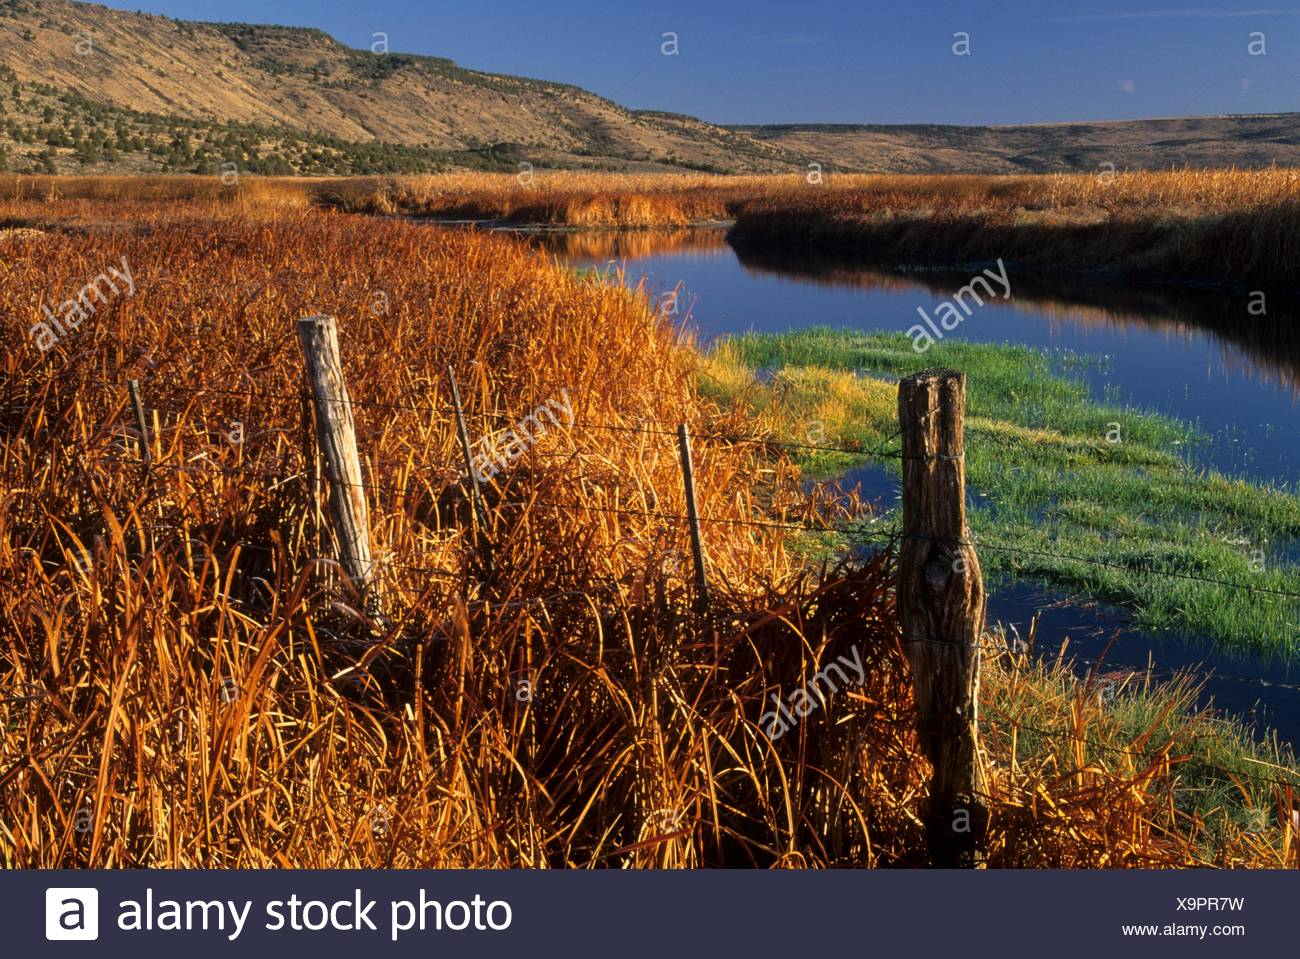 Wetland near Knox Pond, Malheur National Wildlife Refuge